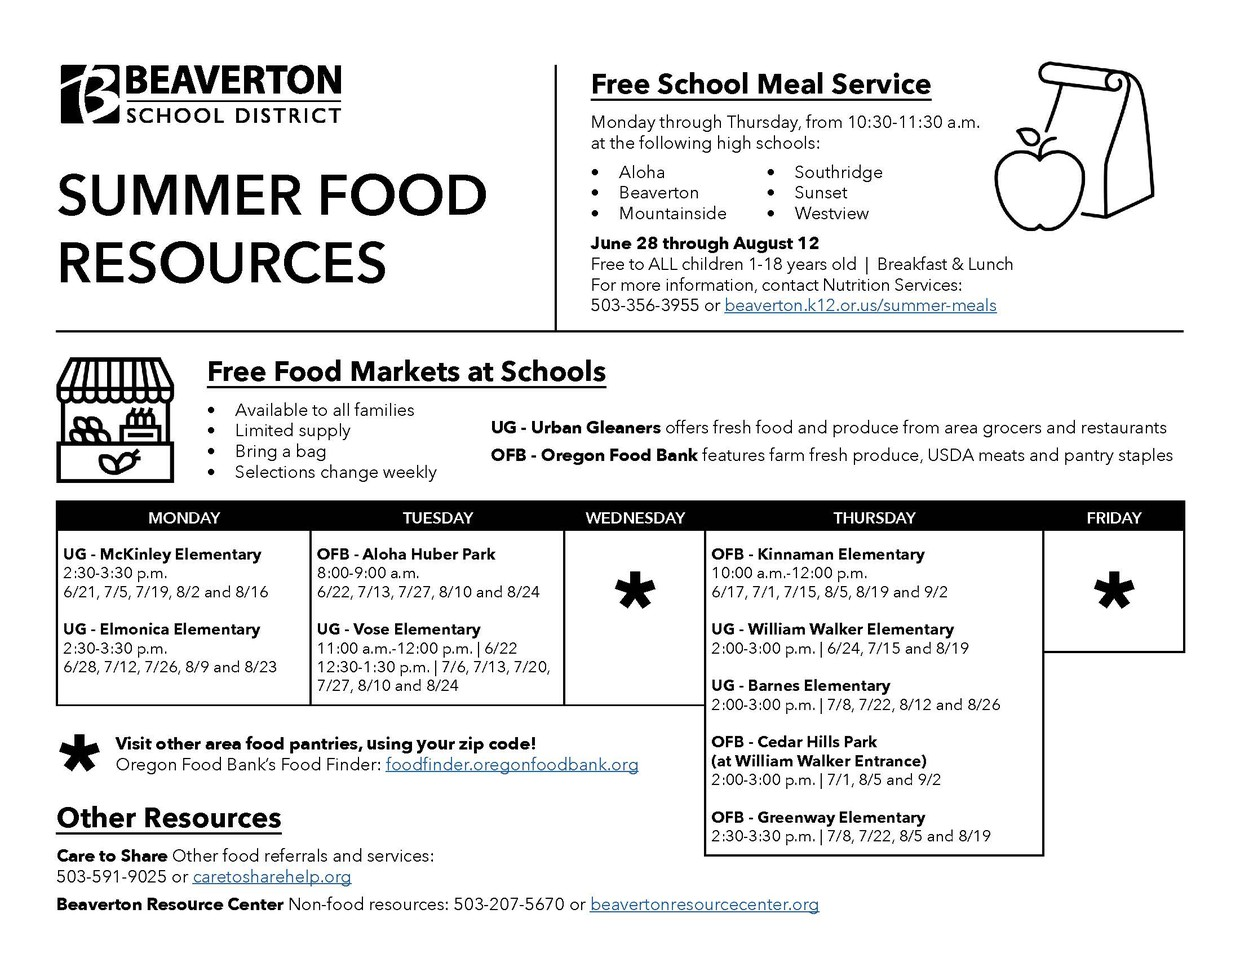 Summer Food Resources graphic